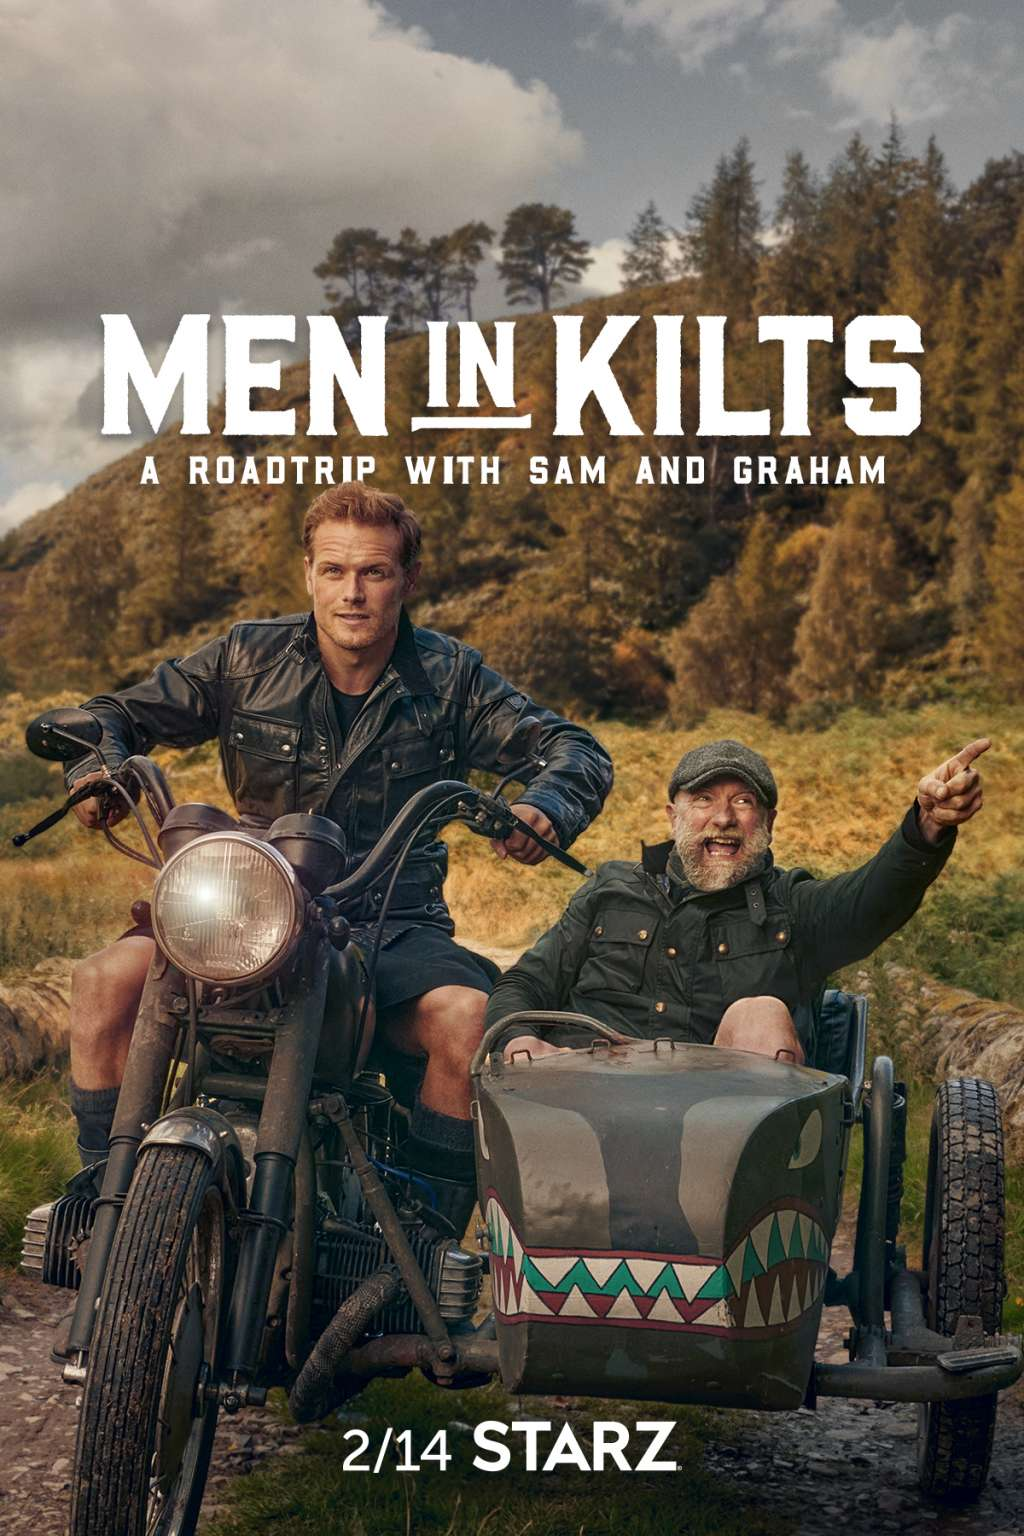 Men in Kilts: A Roadtrip with Sam and Graham kapak